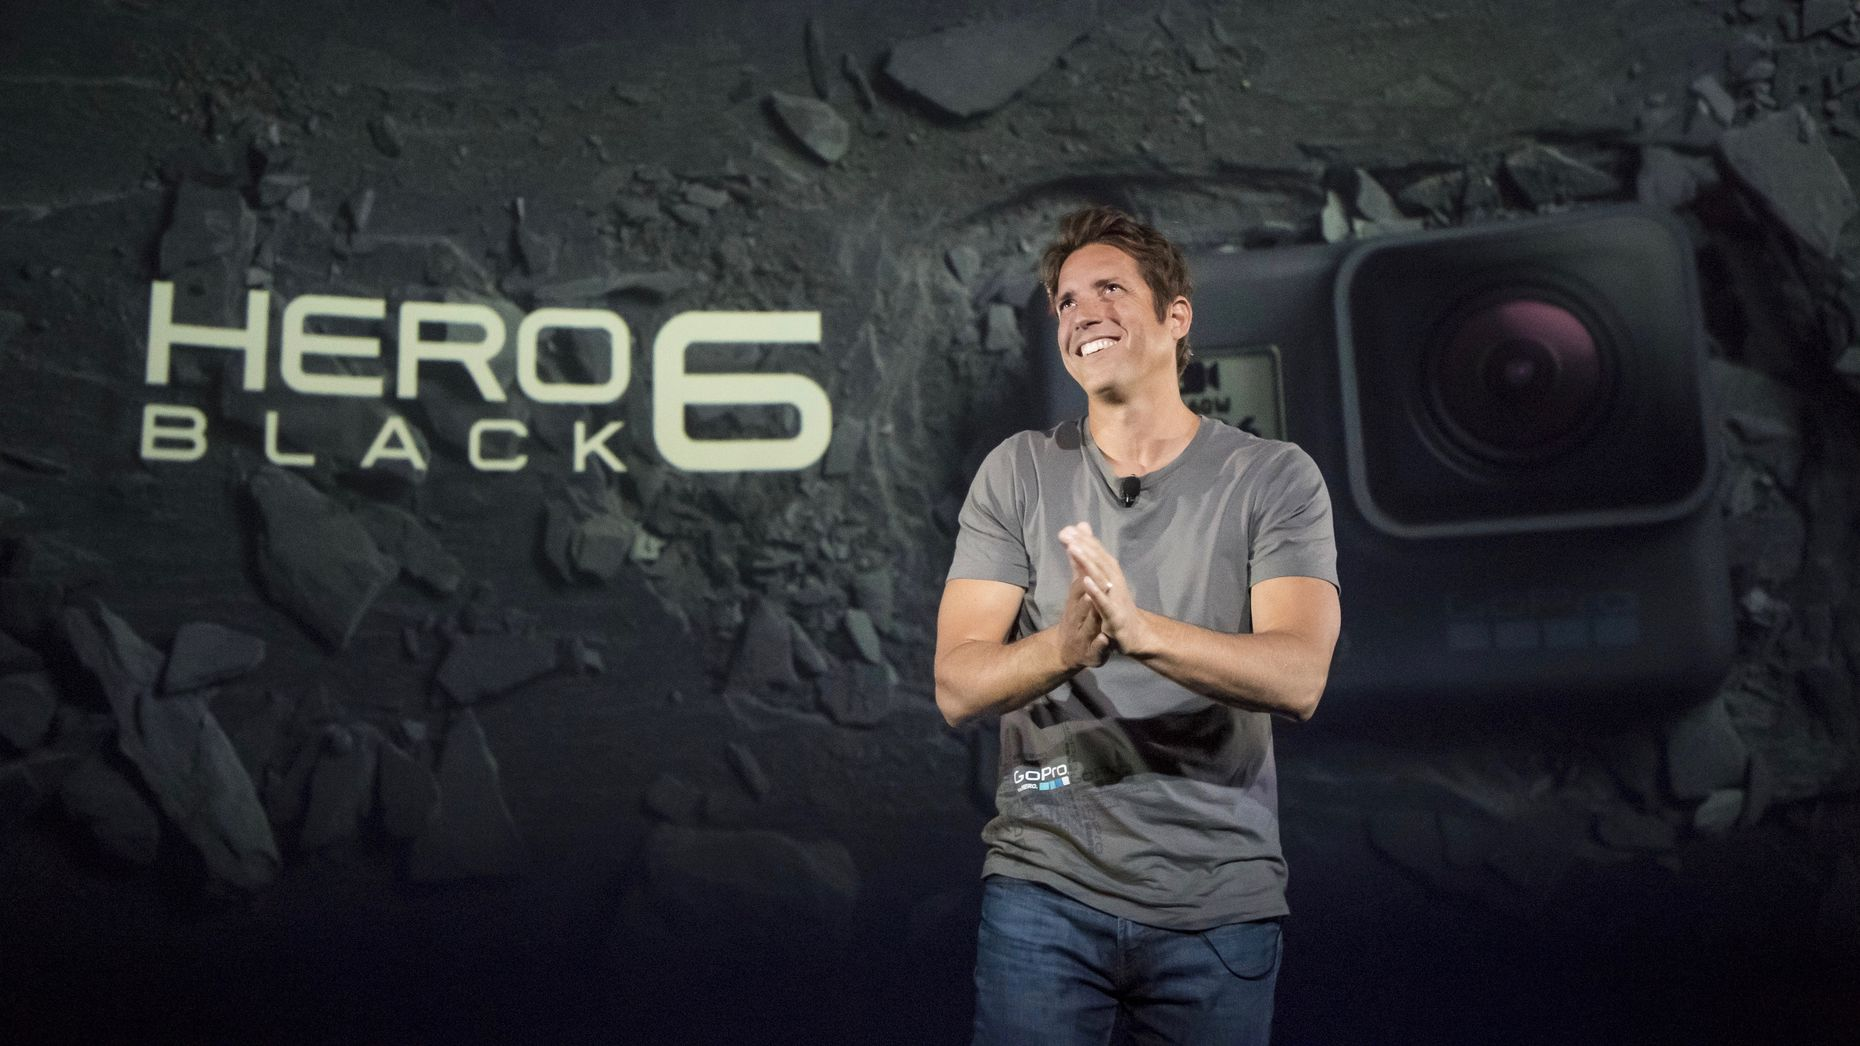 GoPro CEO Nick Woodman at an event last September, unveiling a new version of its Hero wearable action camera. Photo by Bloomberg.